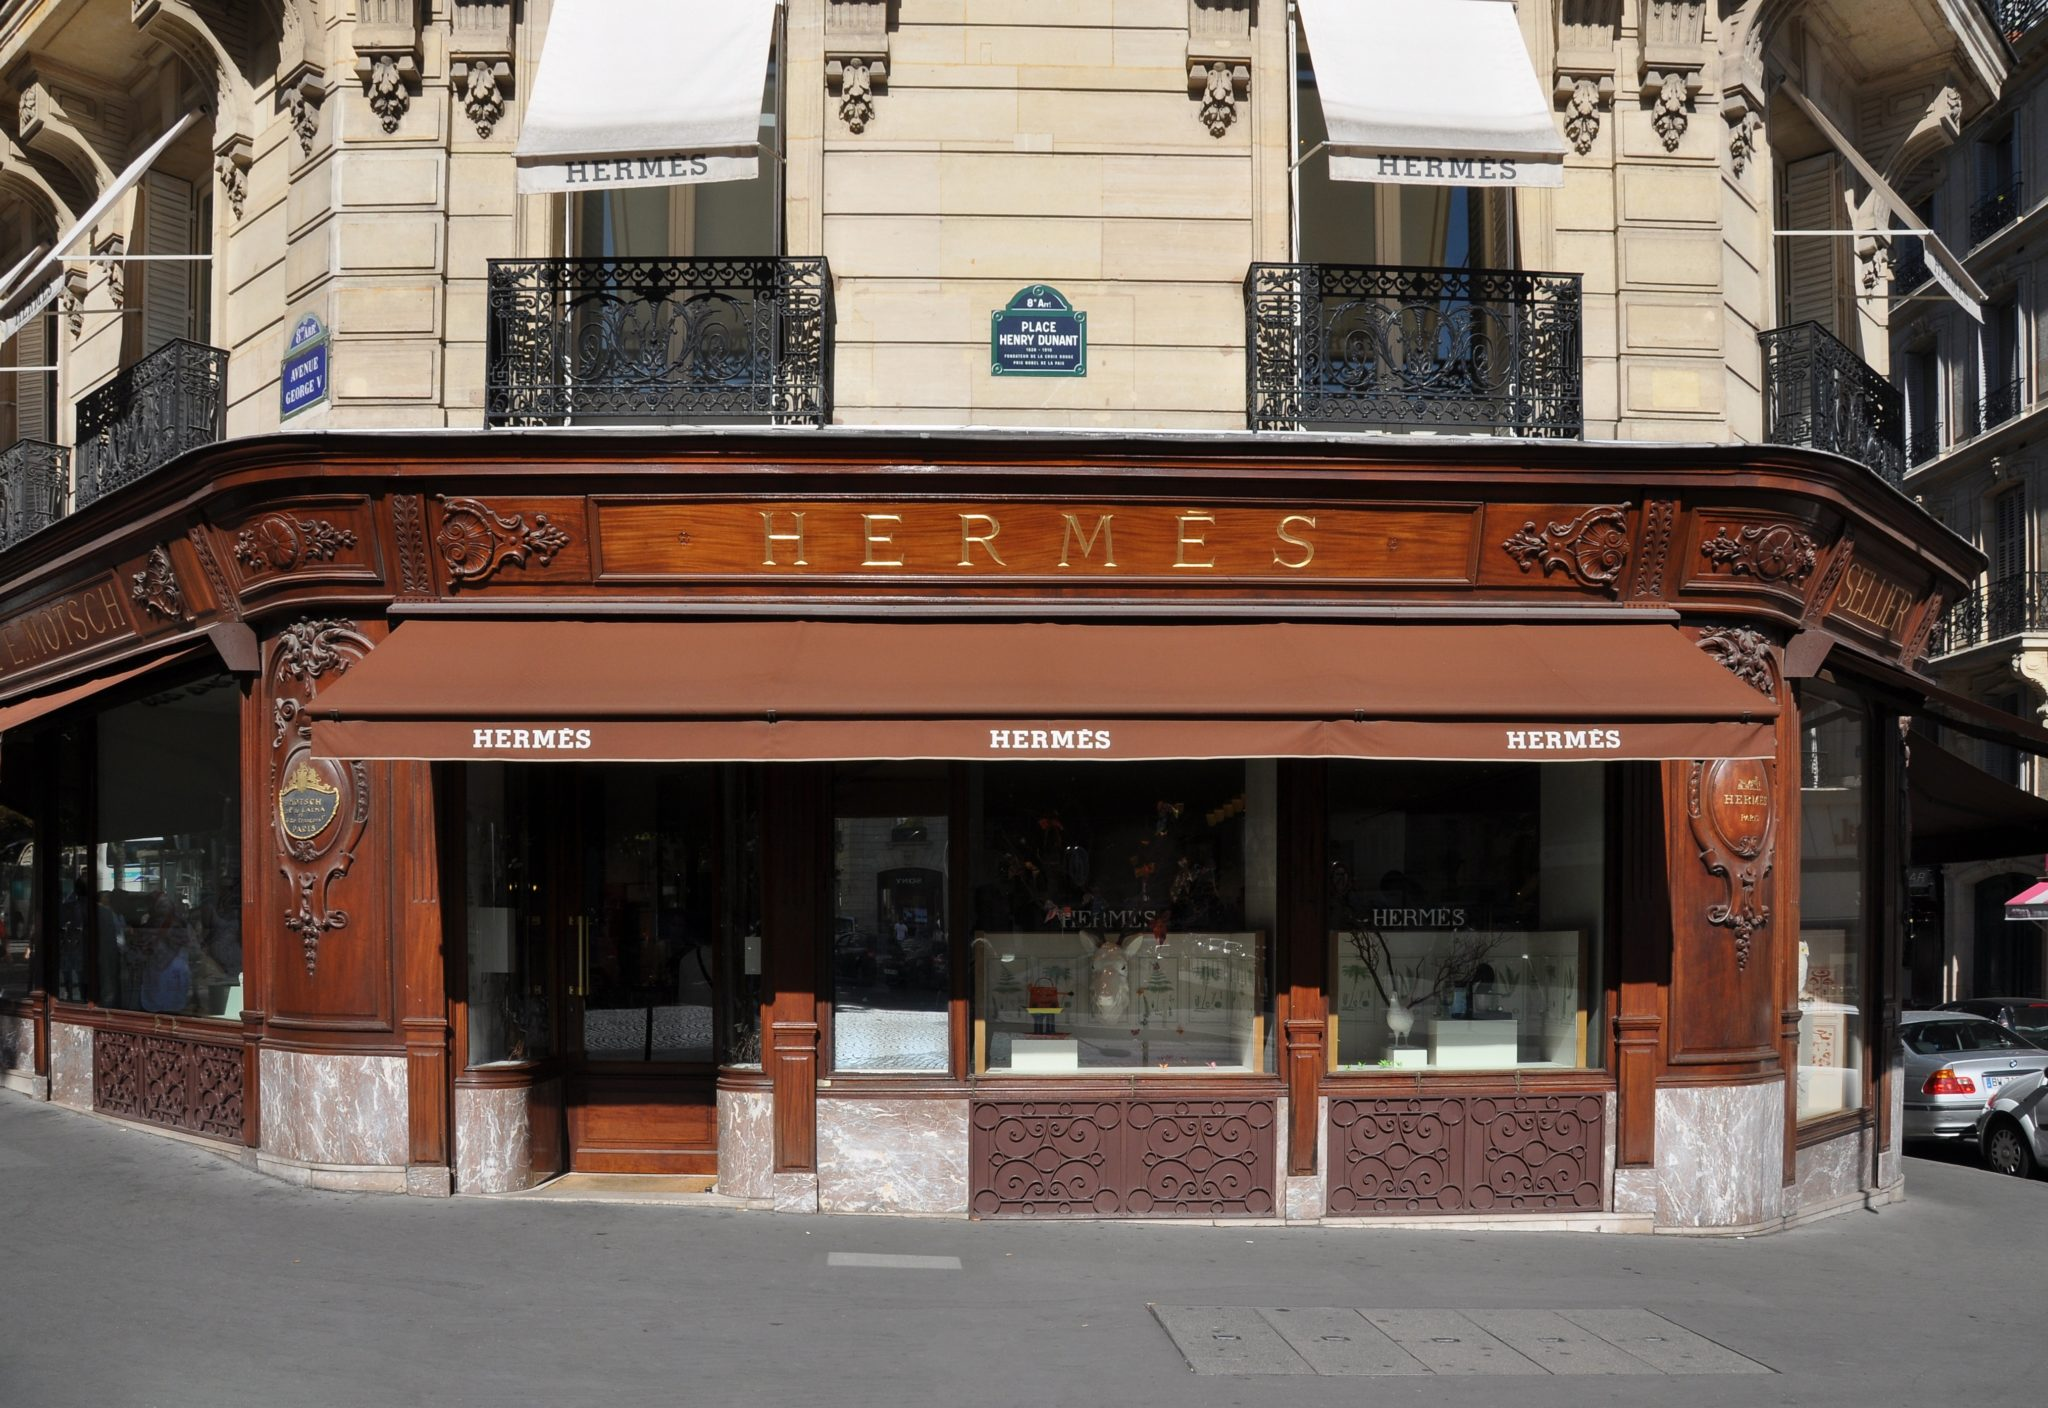 hermes store paris - the home of the most expensive Hermes Birkin bags